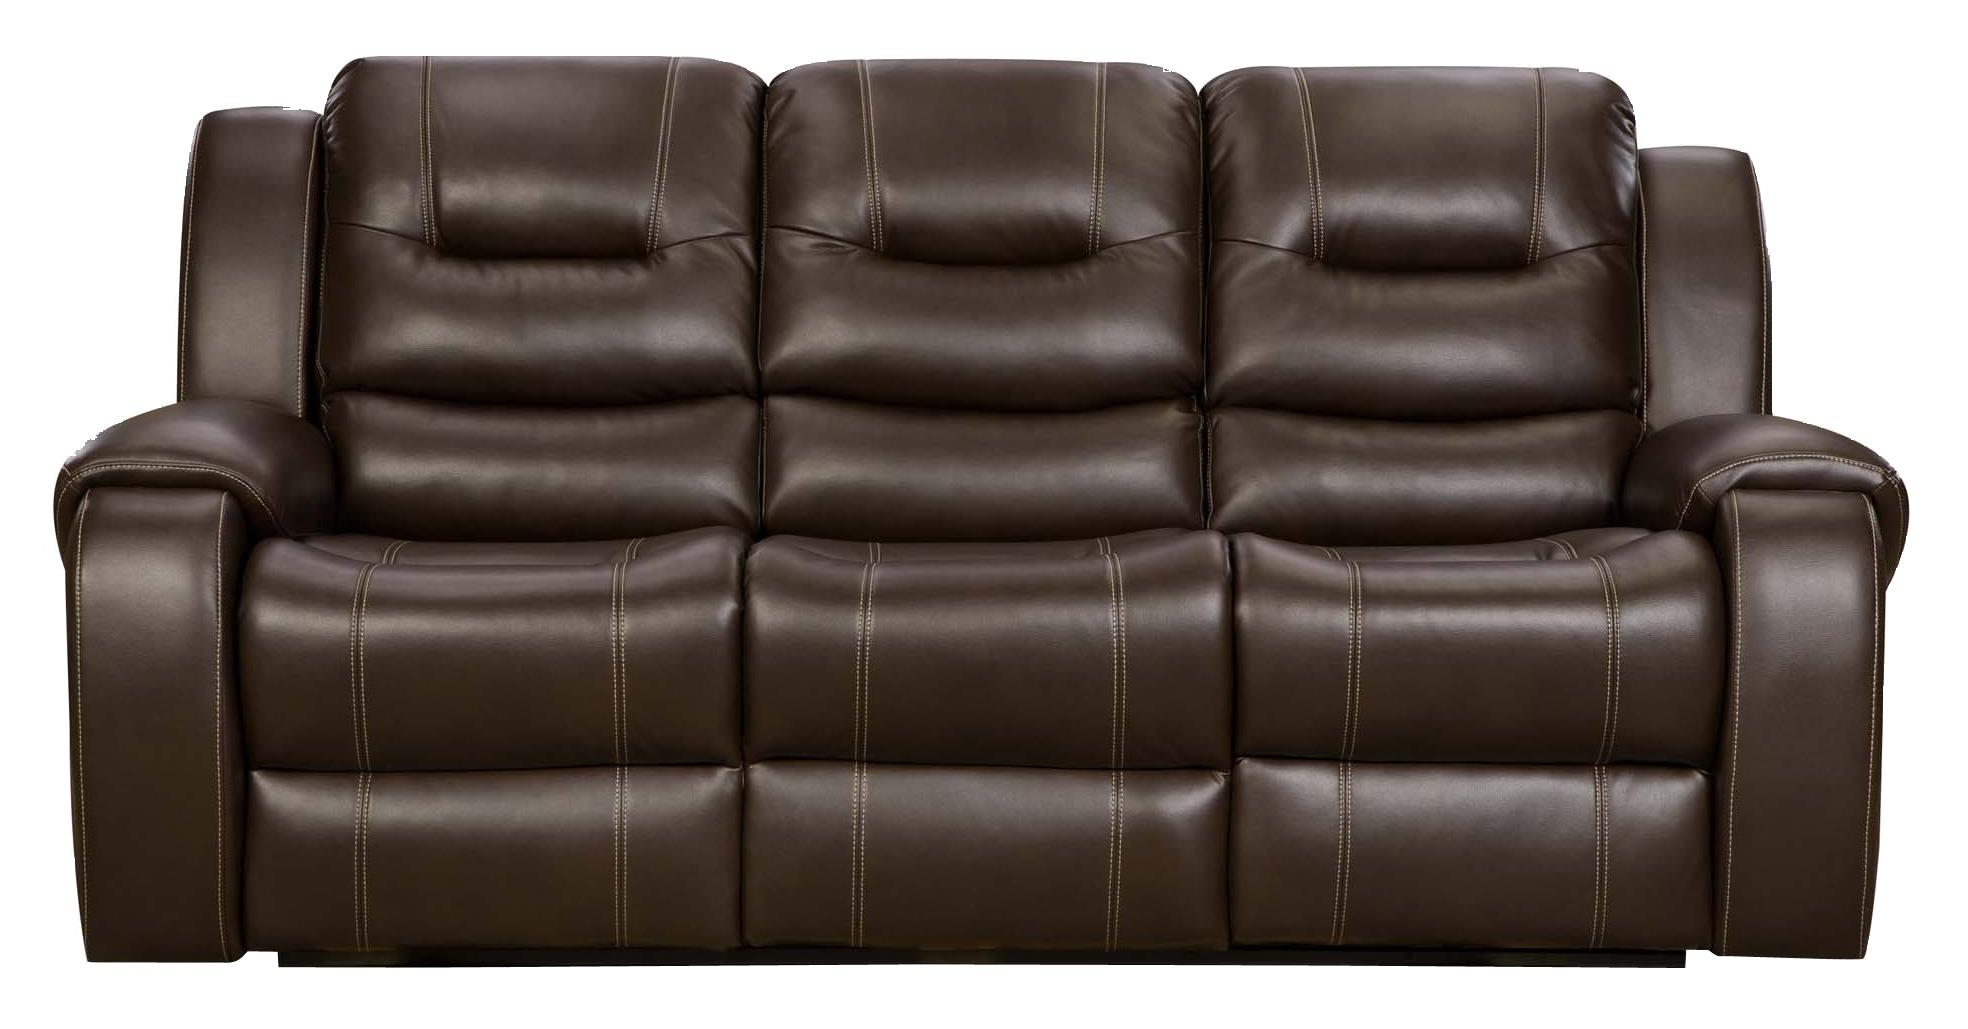 Madison Reclining Sofa with 2 Reclining Seats Belfort Furniture